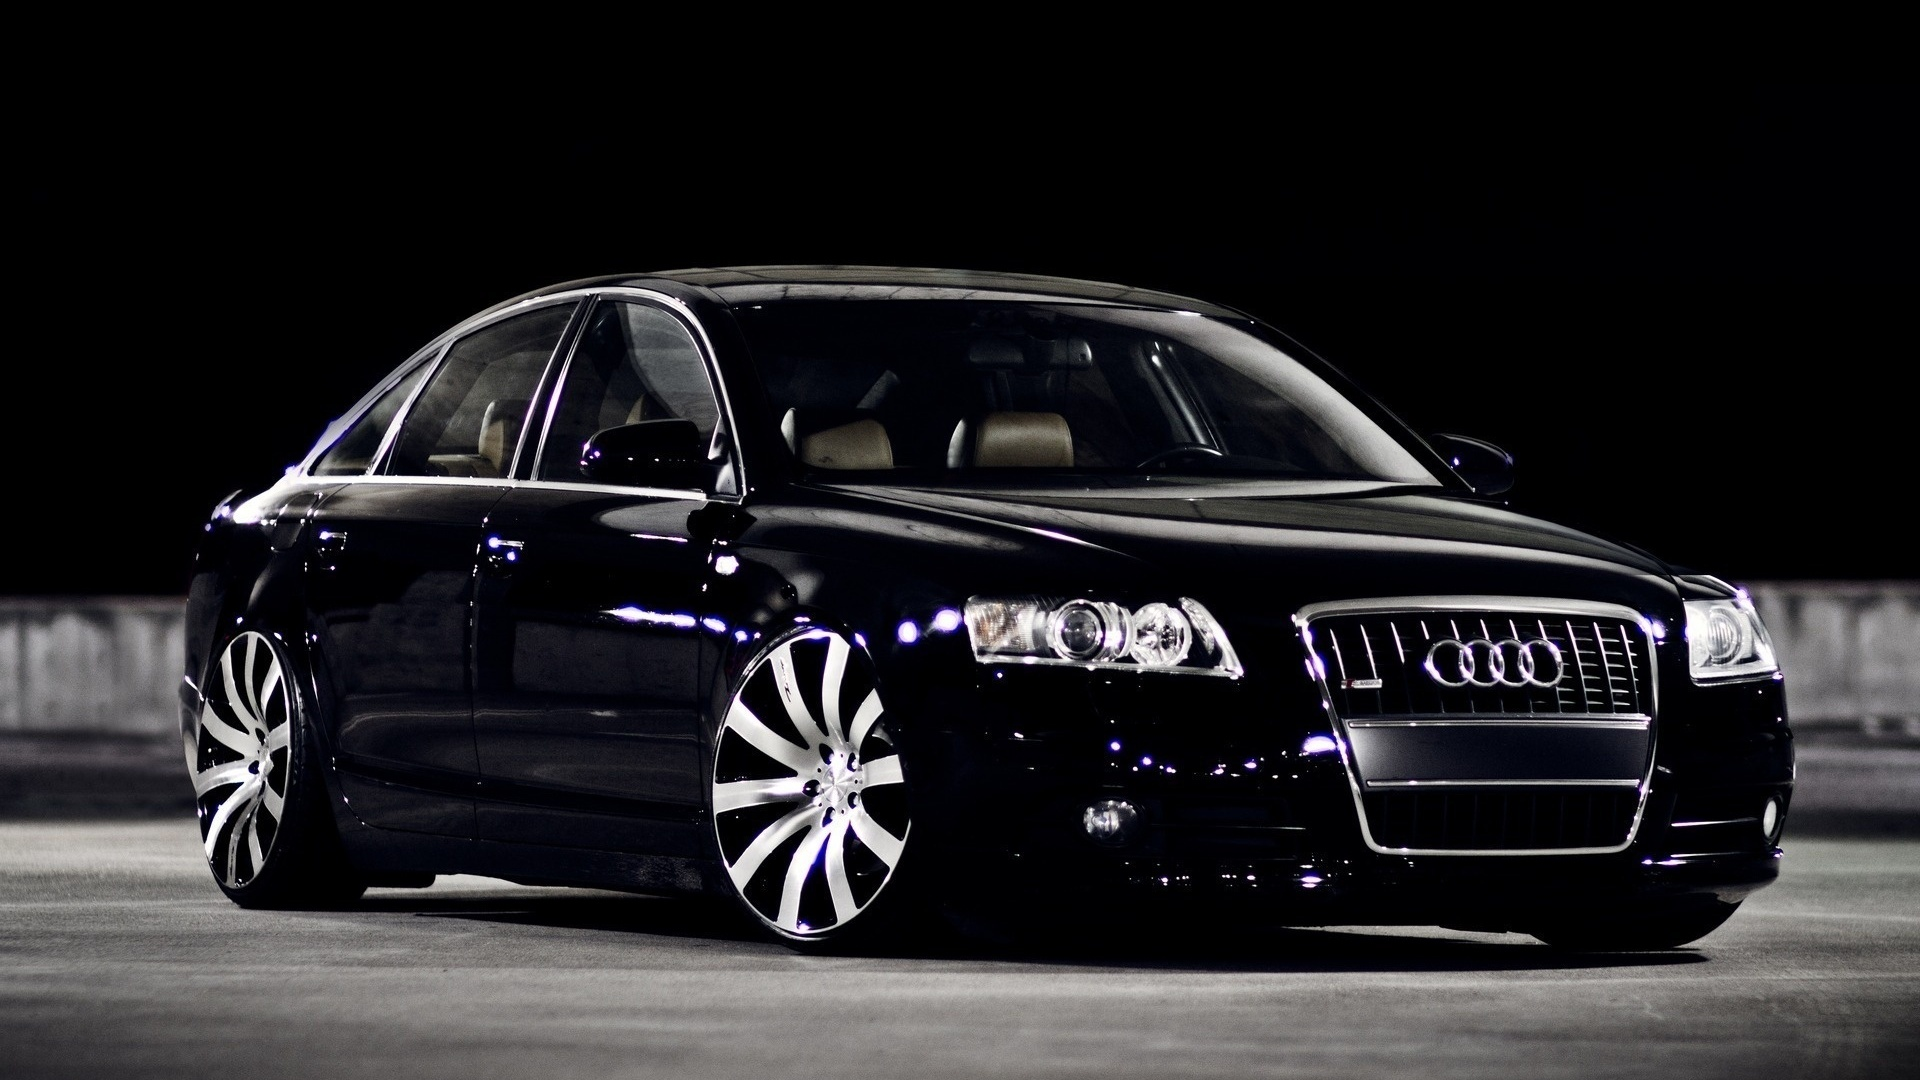 For Your Desktop 42 Top Quality Audi A8 Wallpapers BSCB 1920x1080